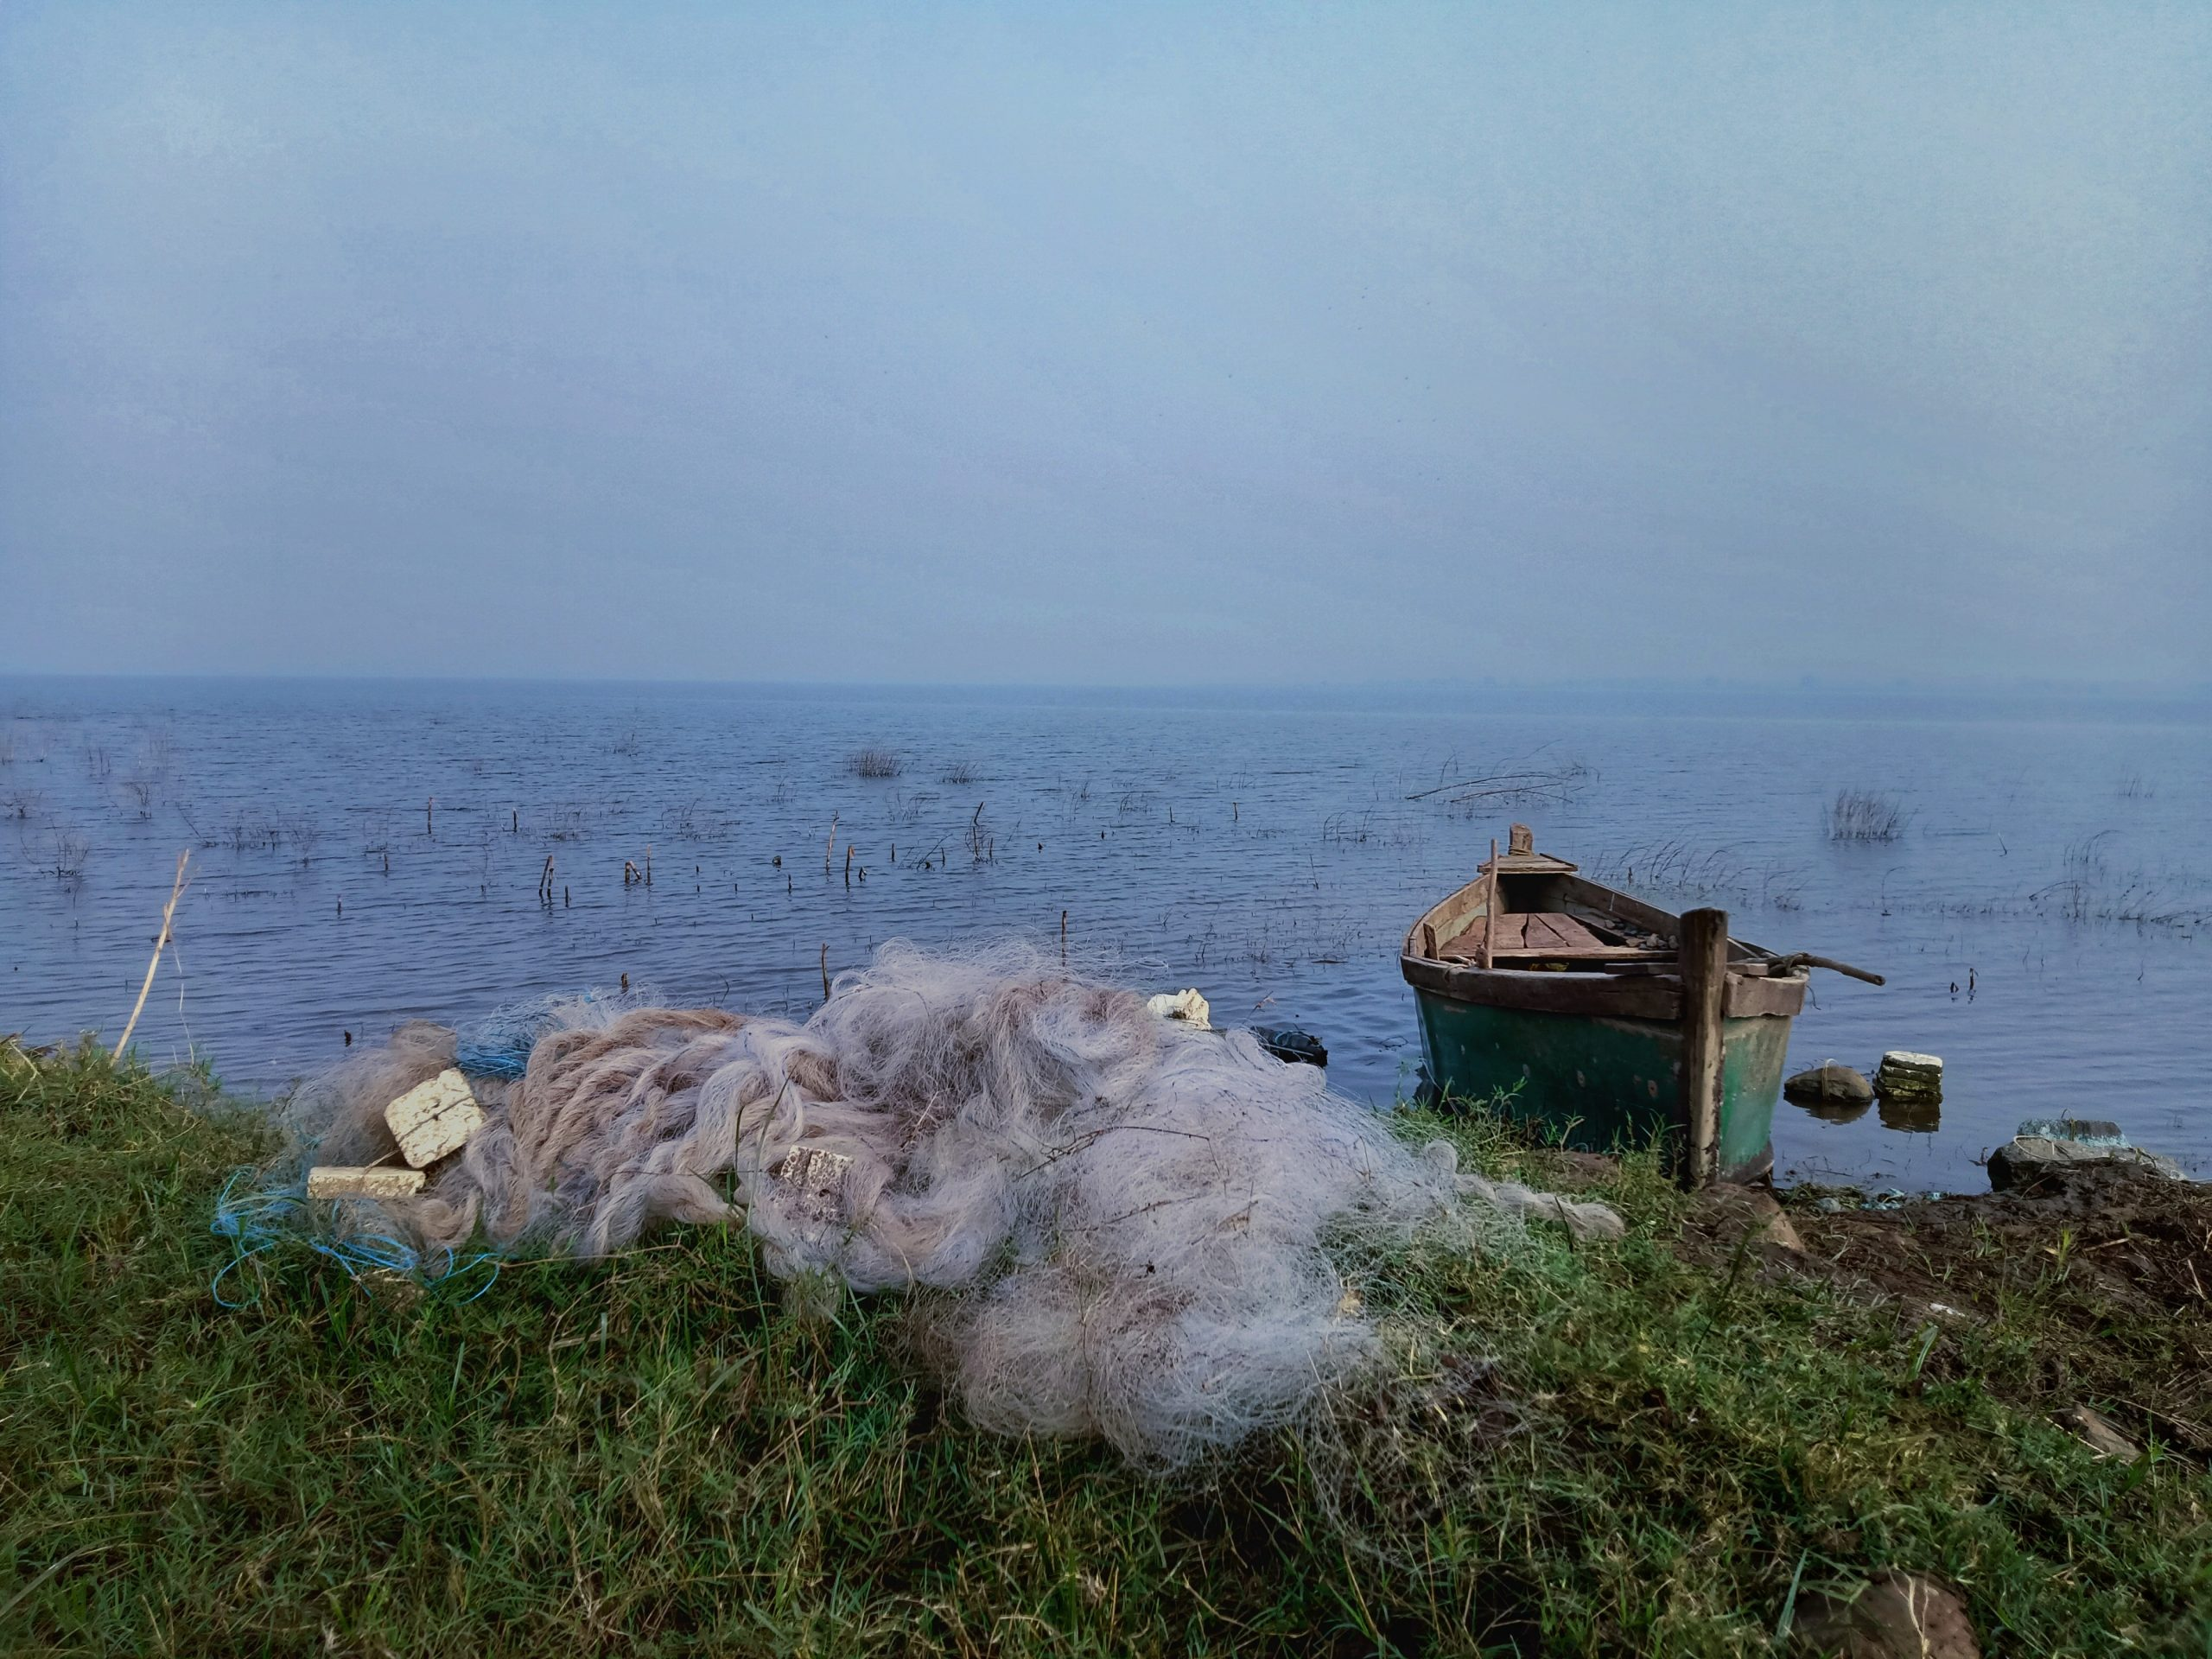 Fishing net and boat near the river